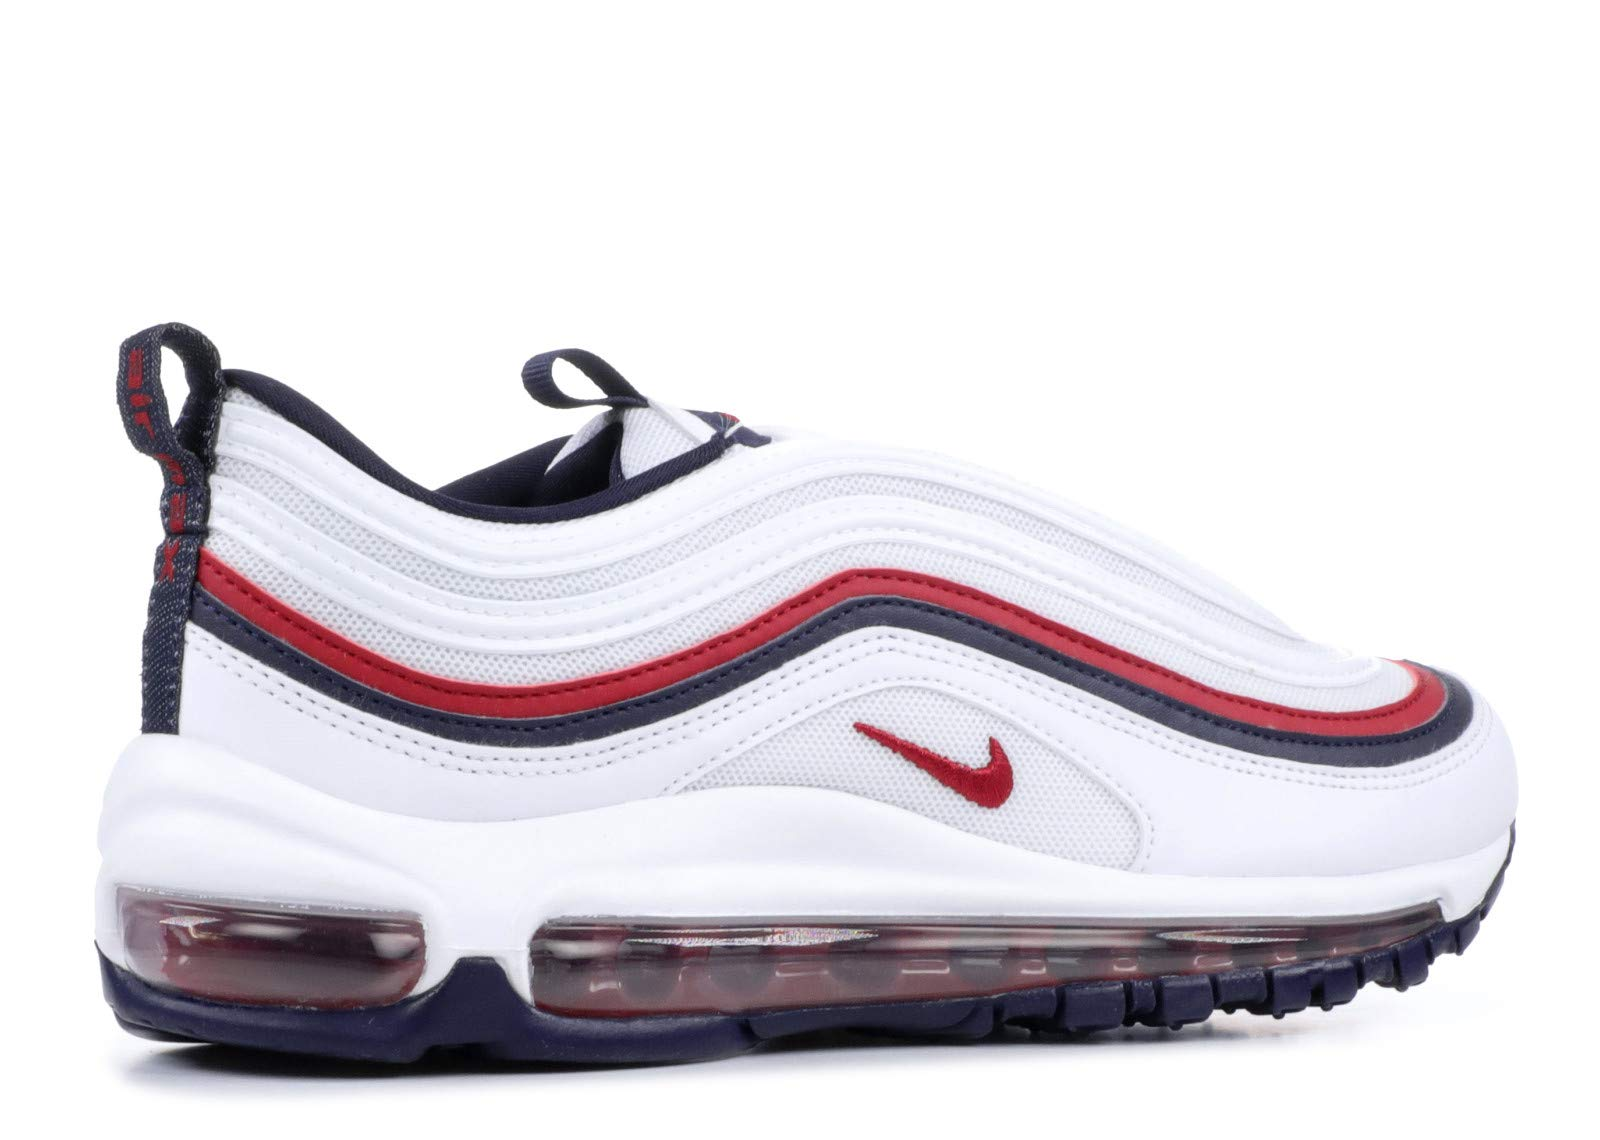 612nJ0NNGHL - Nike Women's W Air Max 97 Competition Running Shoes